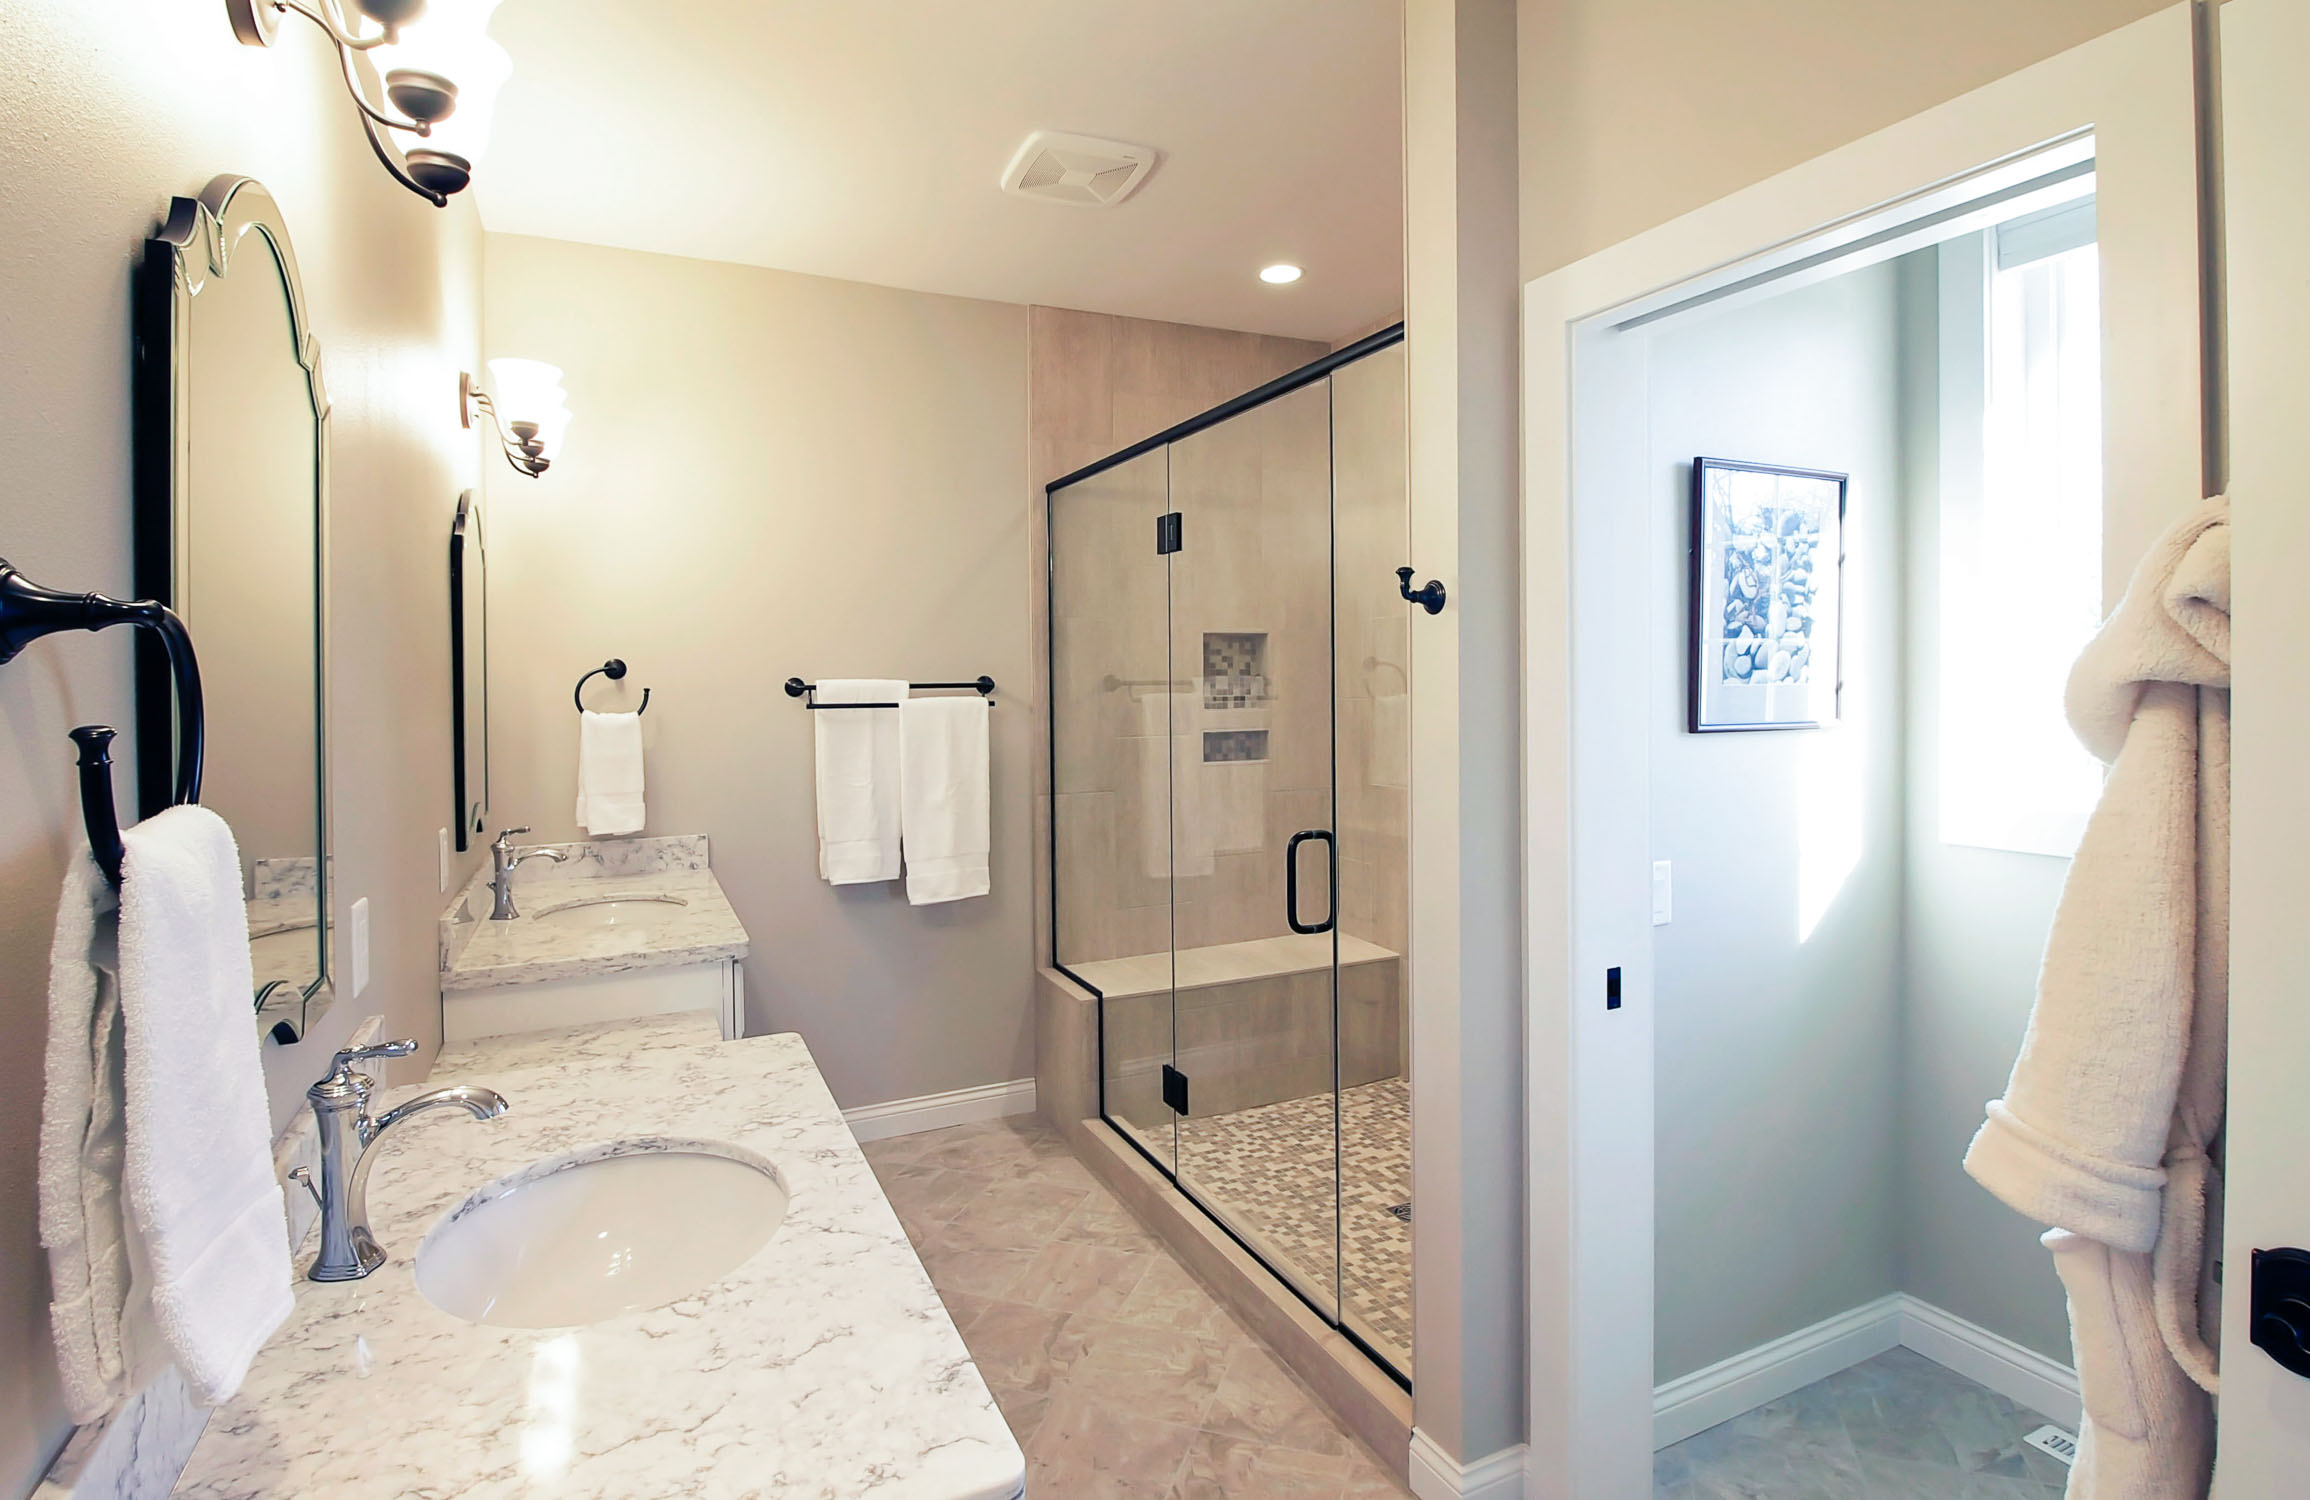 - This glass shower wall has a special coating to help prevent water spotting.